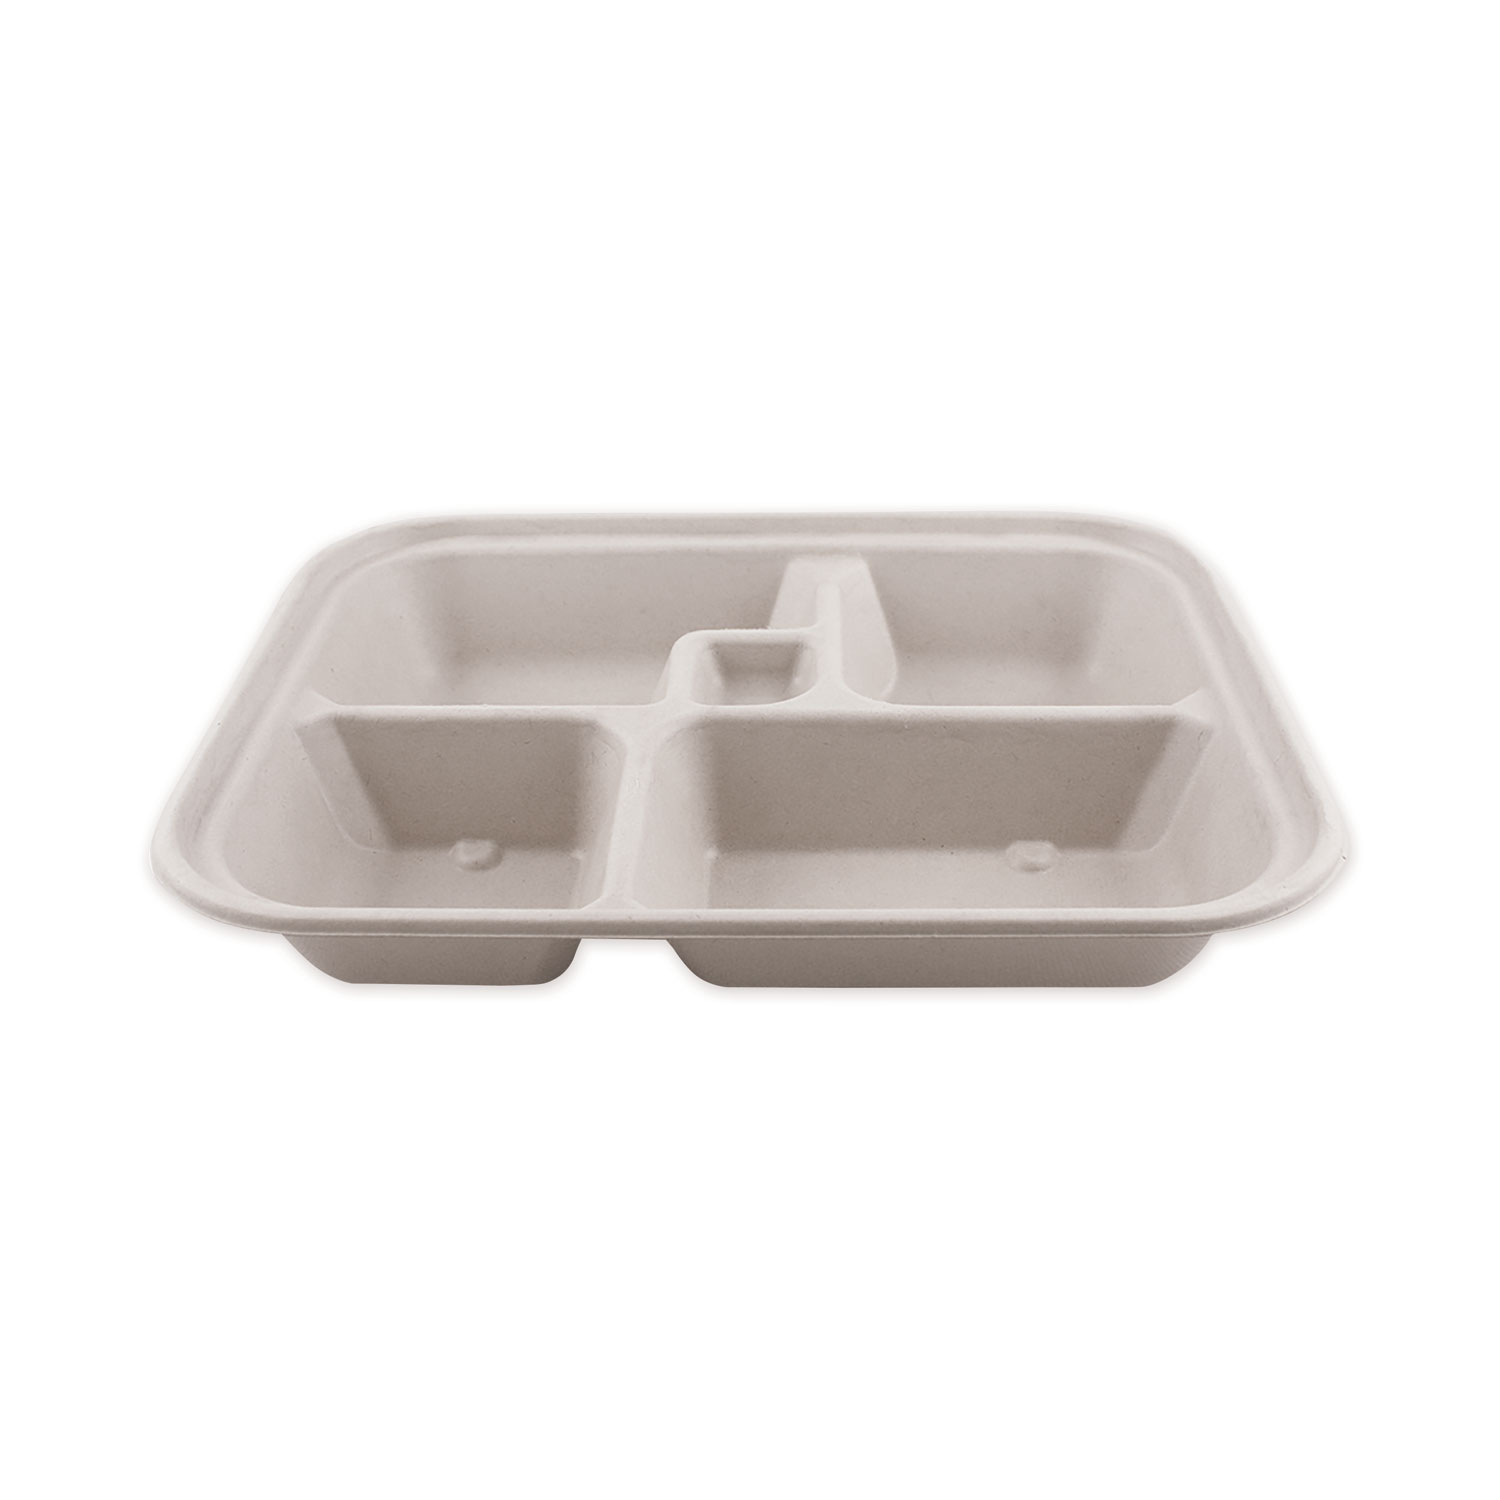 World Centric® Fiber Bento Box Containers, Five Compartments, 11.8 x 9.4 x 2, Natural, 300/Carton